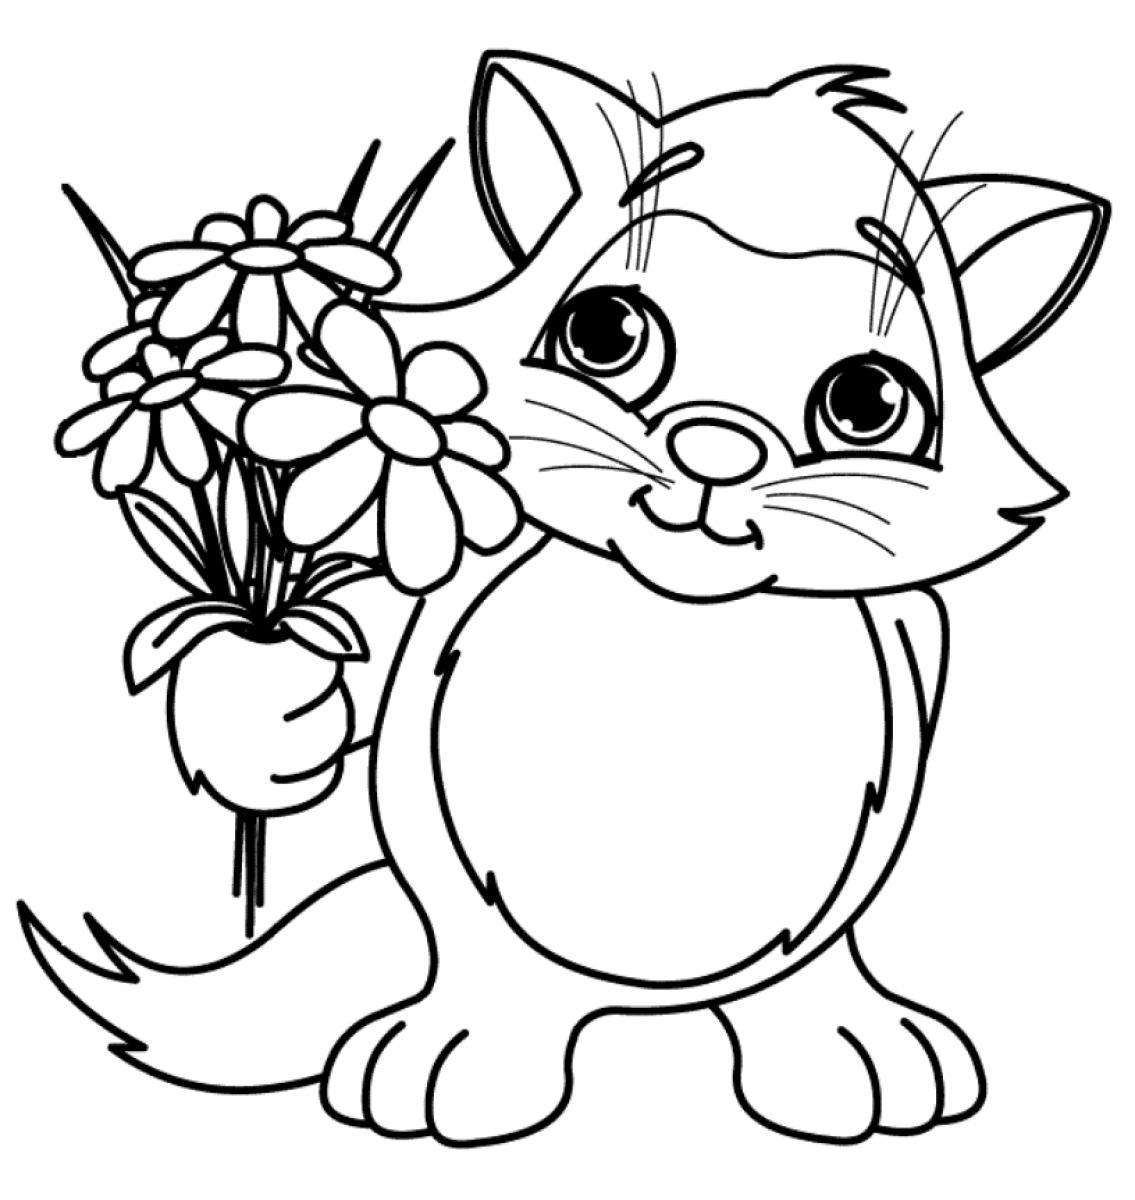 coloring pages flowers printable flower coloring pages for adults best coloring pages for printable pages flowers coloring